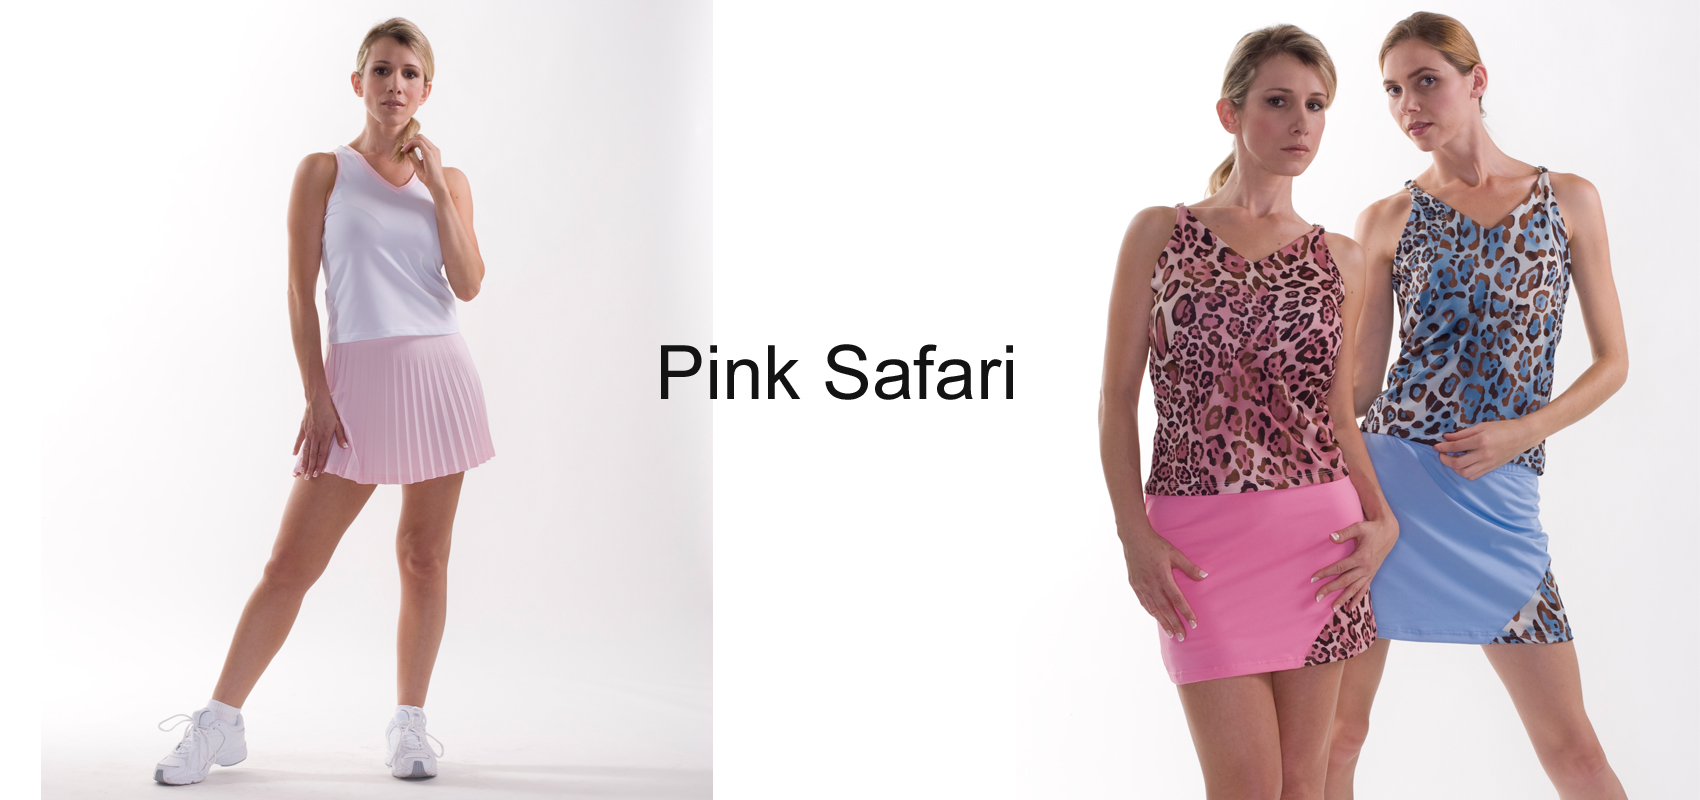 photo-gallery-peachy-tan-pink-safari-2008.jpg